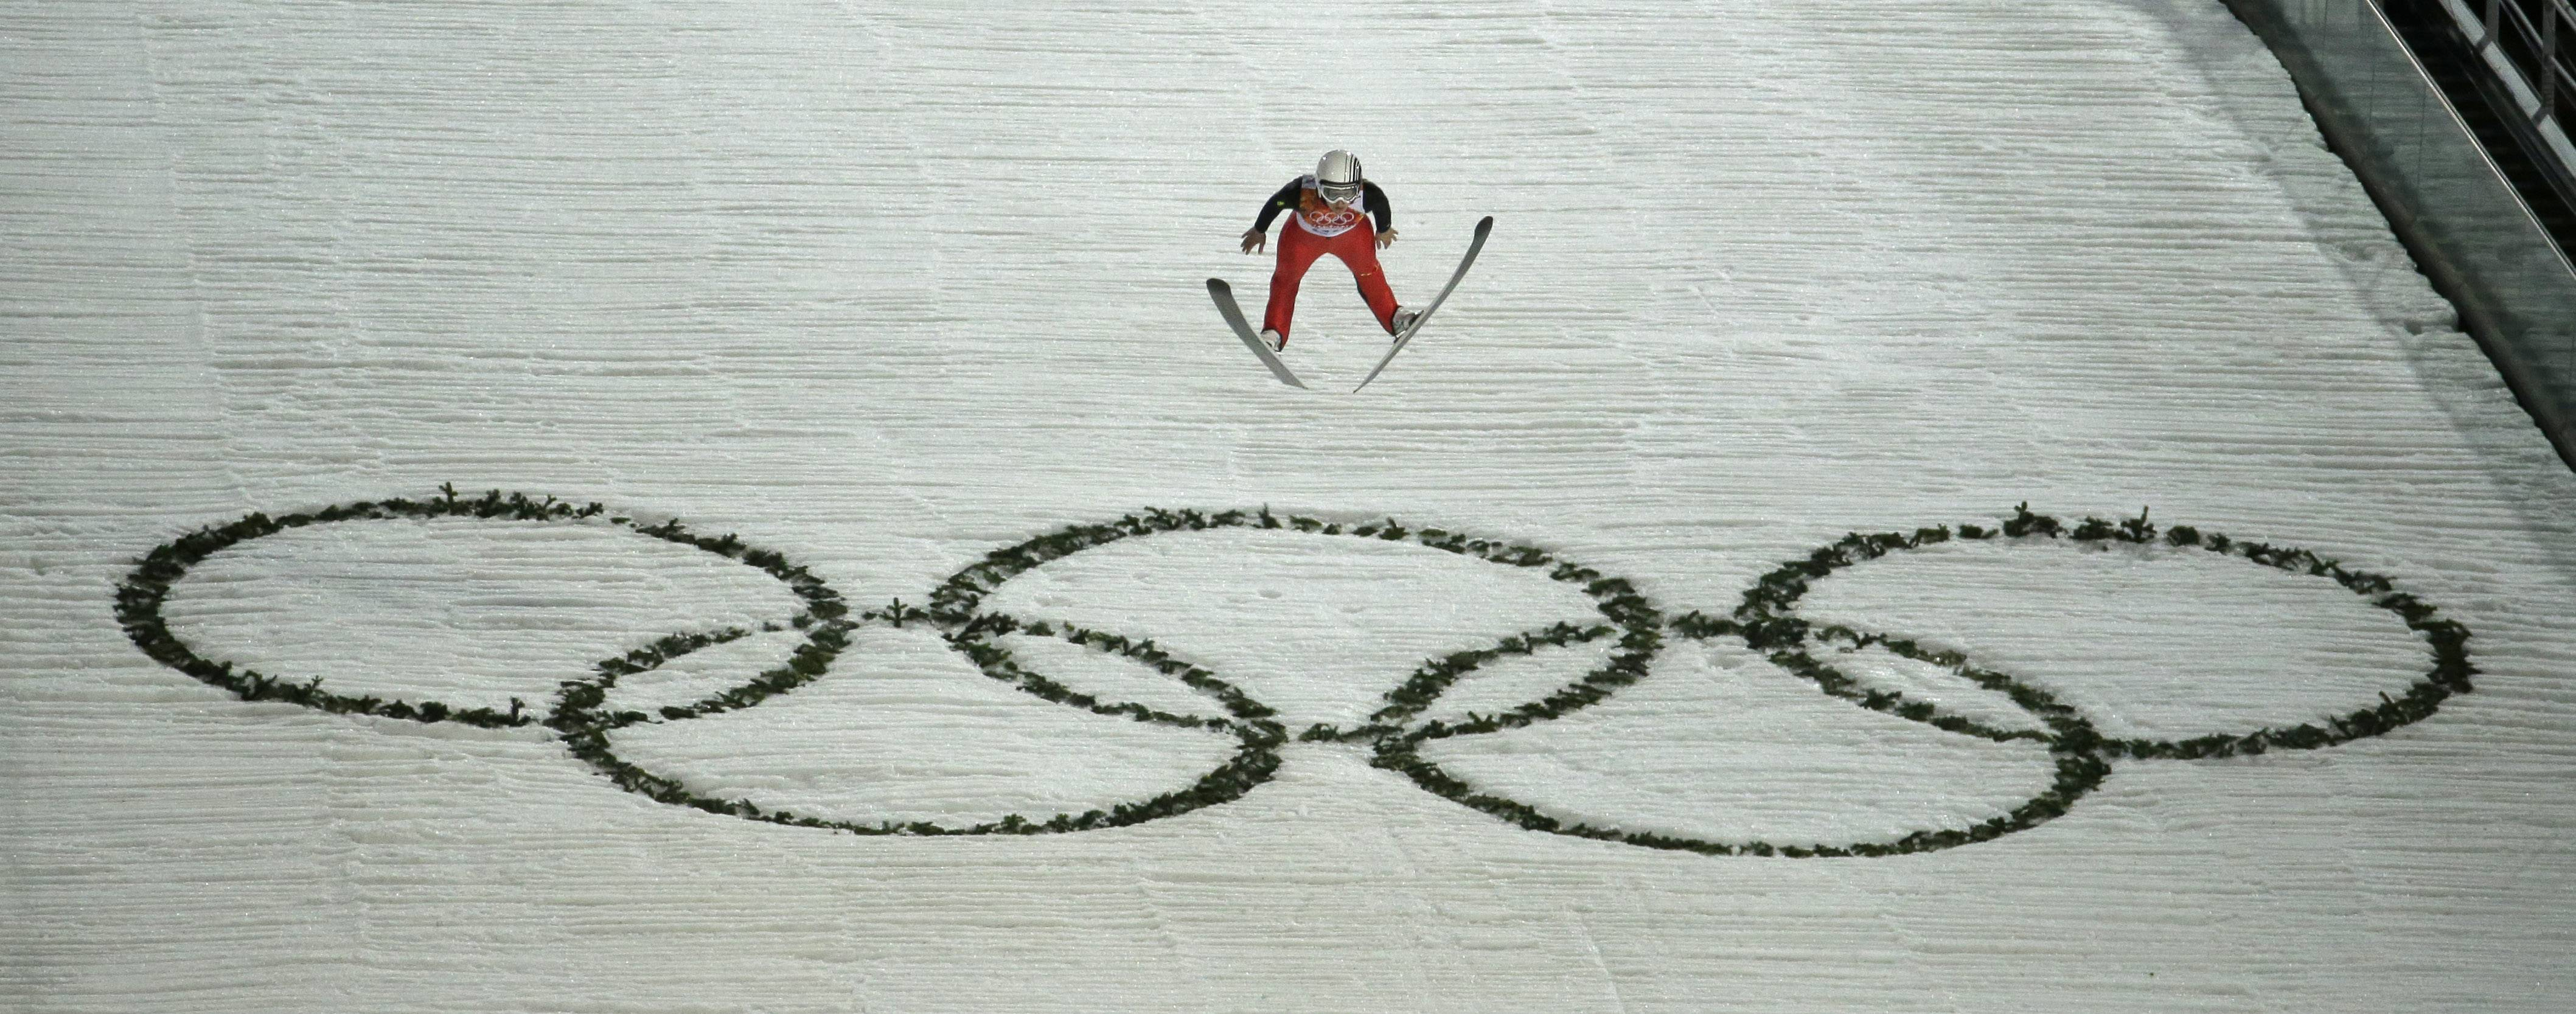 Bronze medalist, France's Coline Mattel takes her second jump in the women's normal hill ski jumping final.